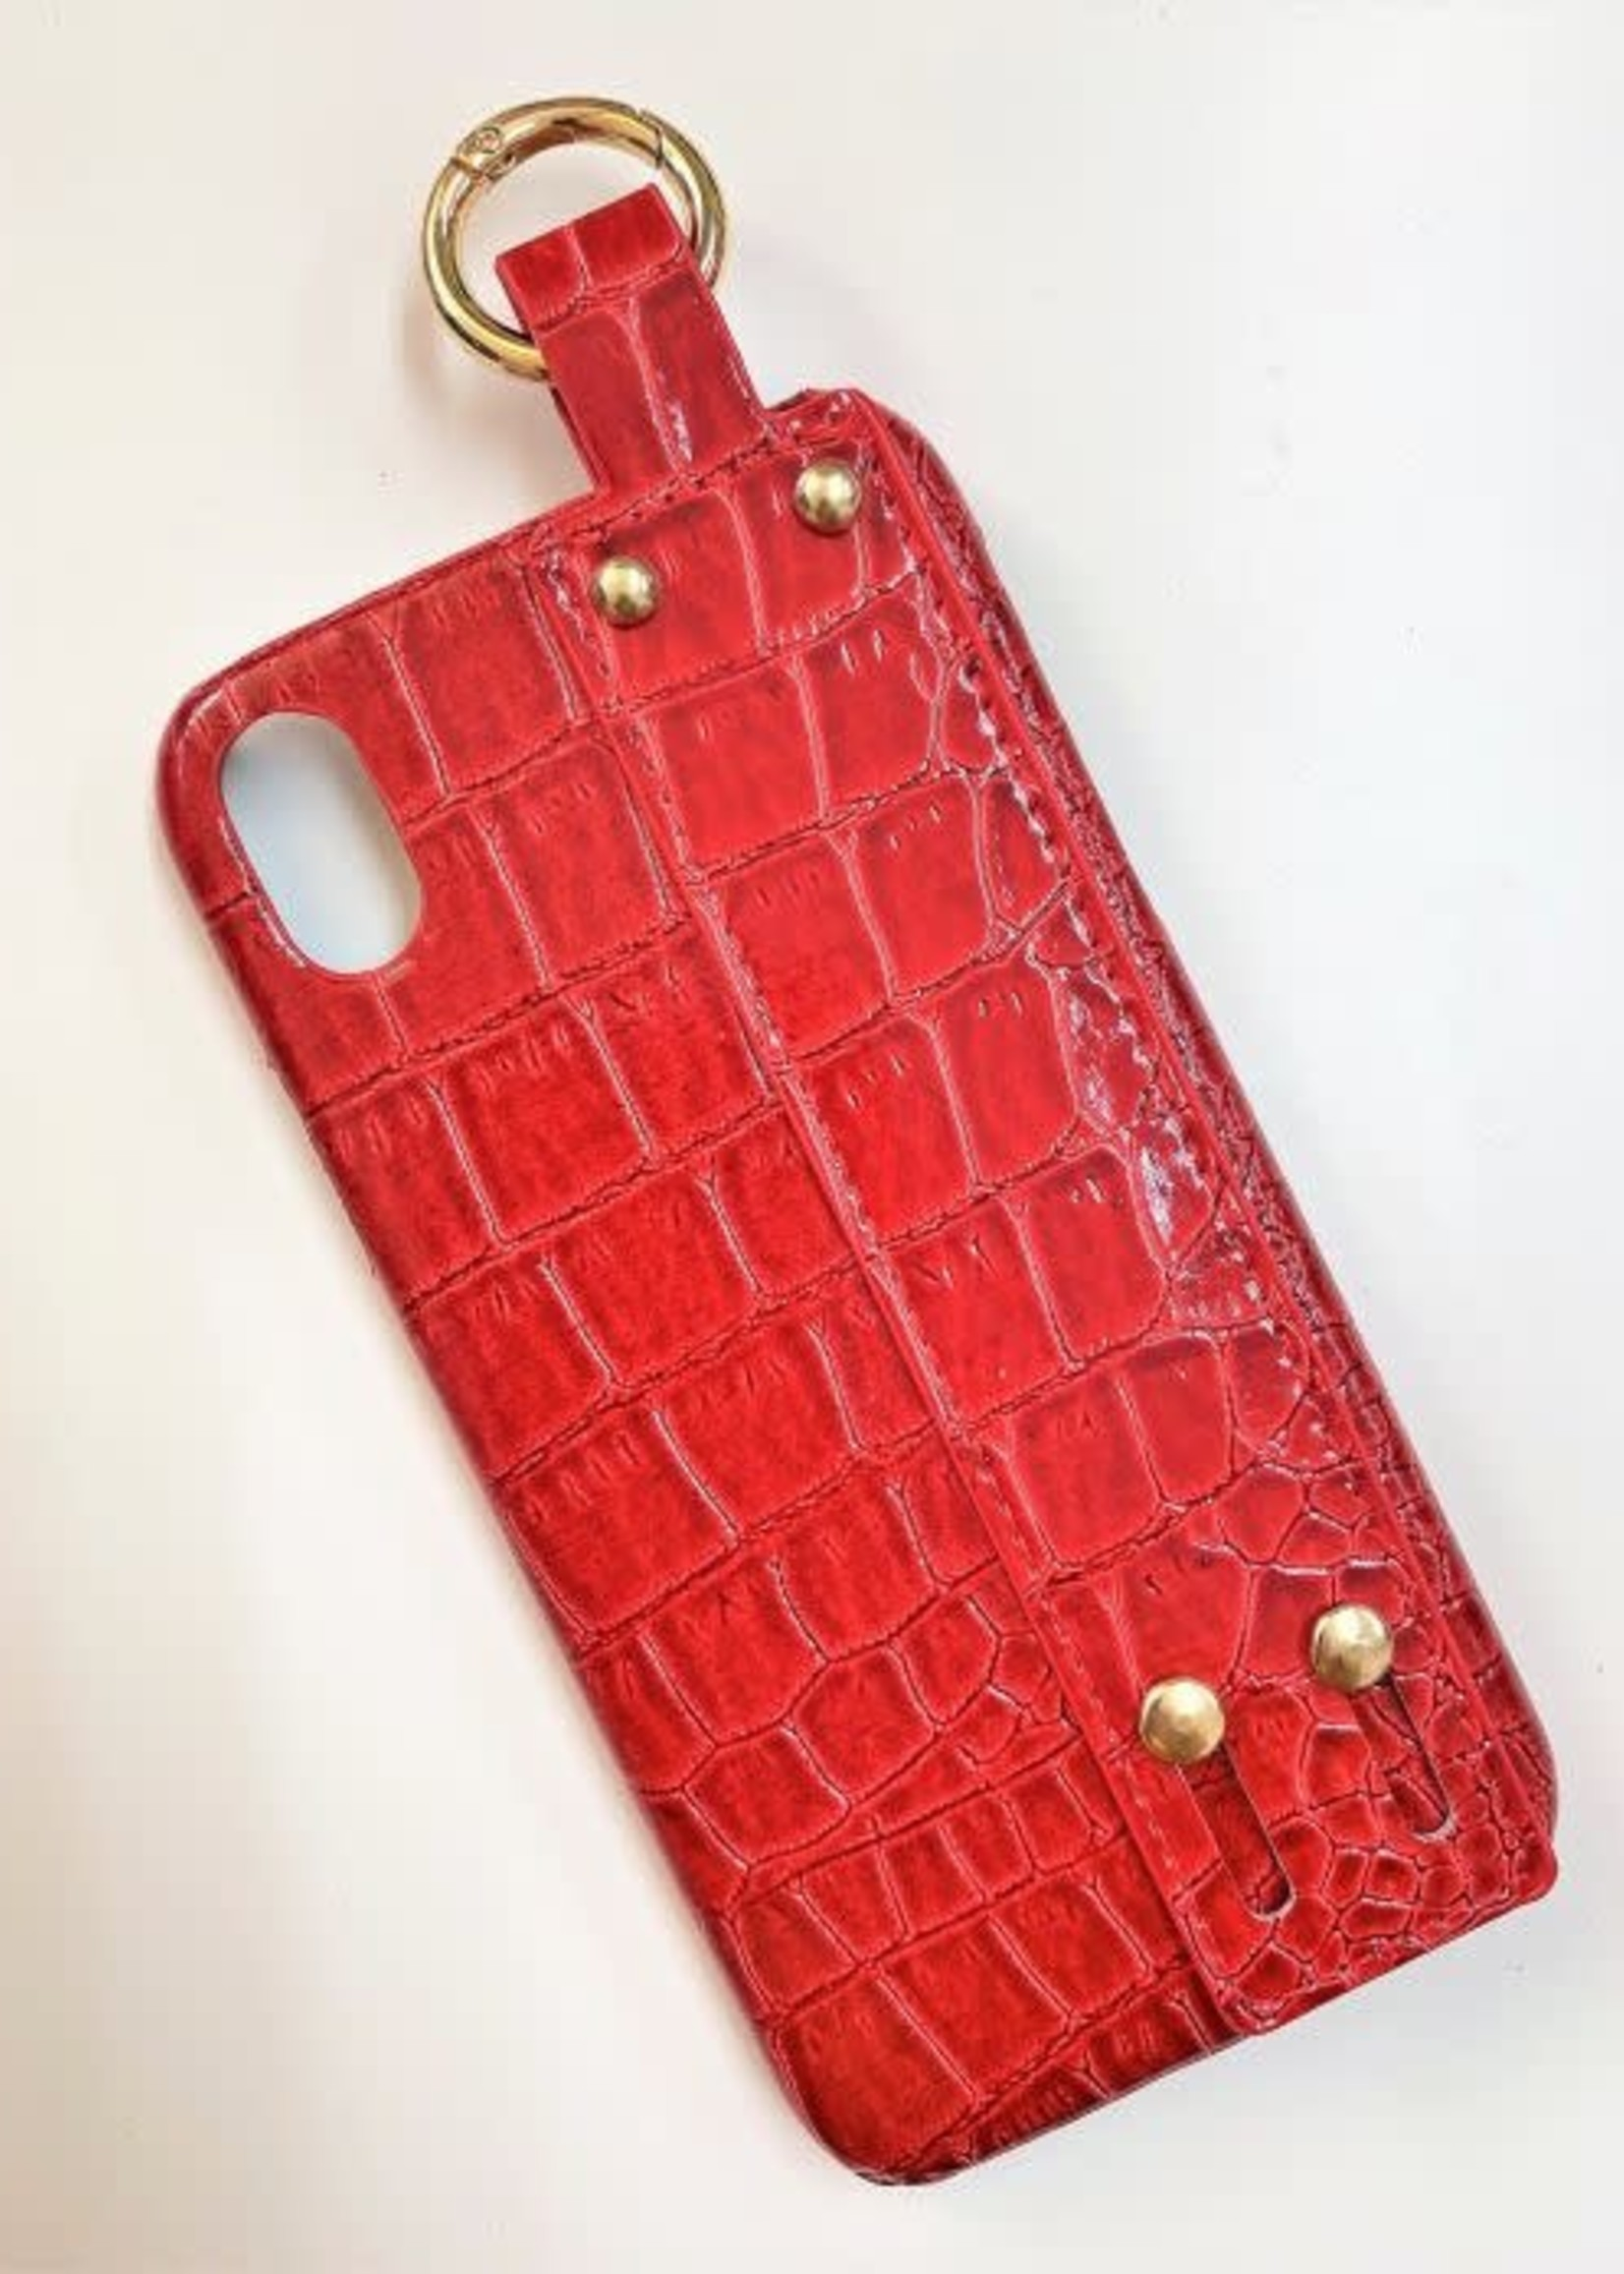 L&B Gator With Handle Iphone Case